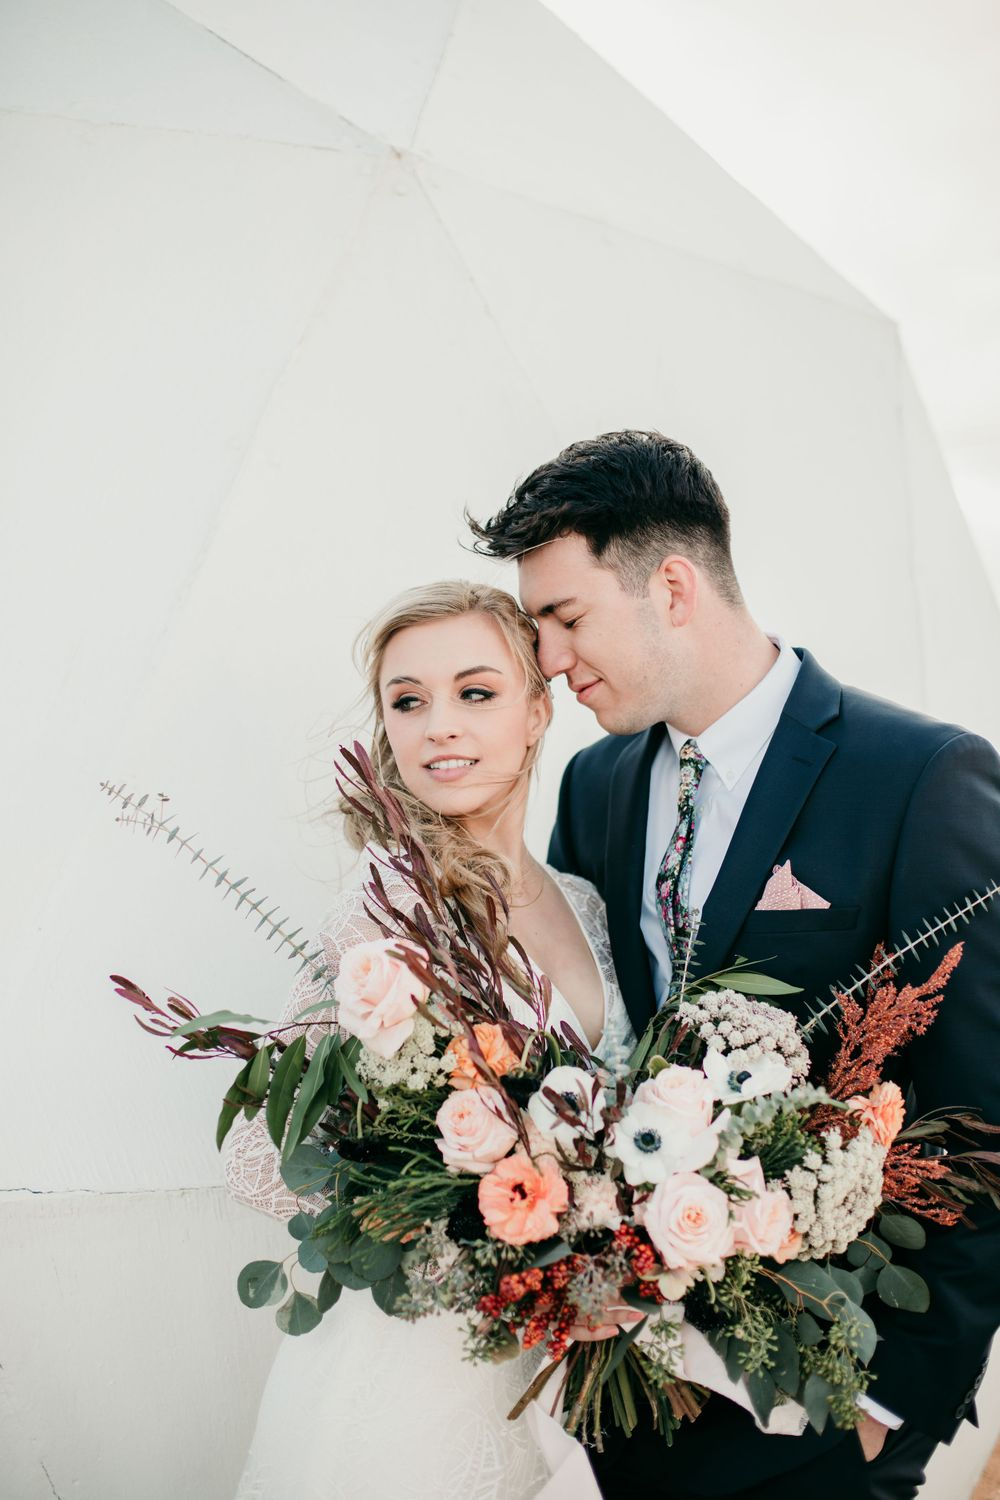 stylish bride and groom holding large bouquet